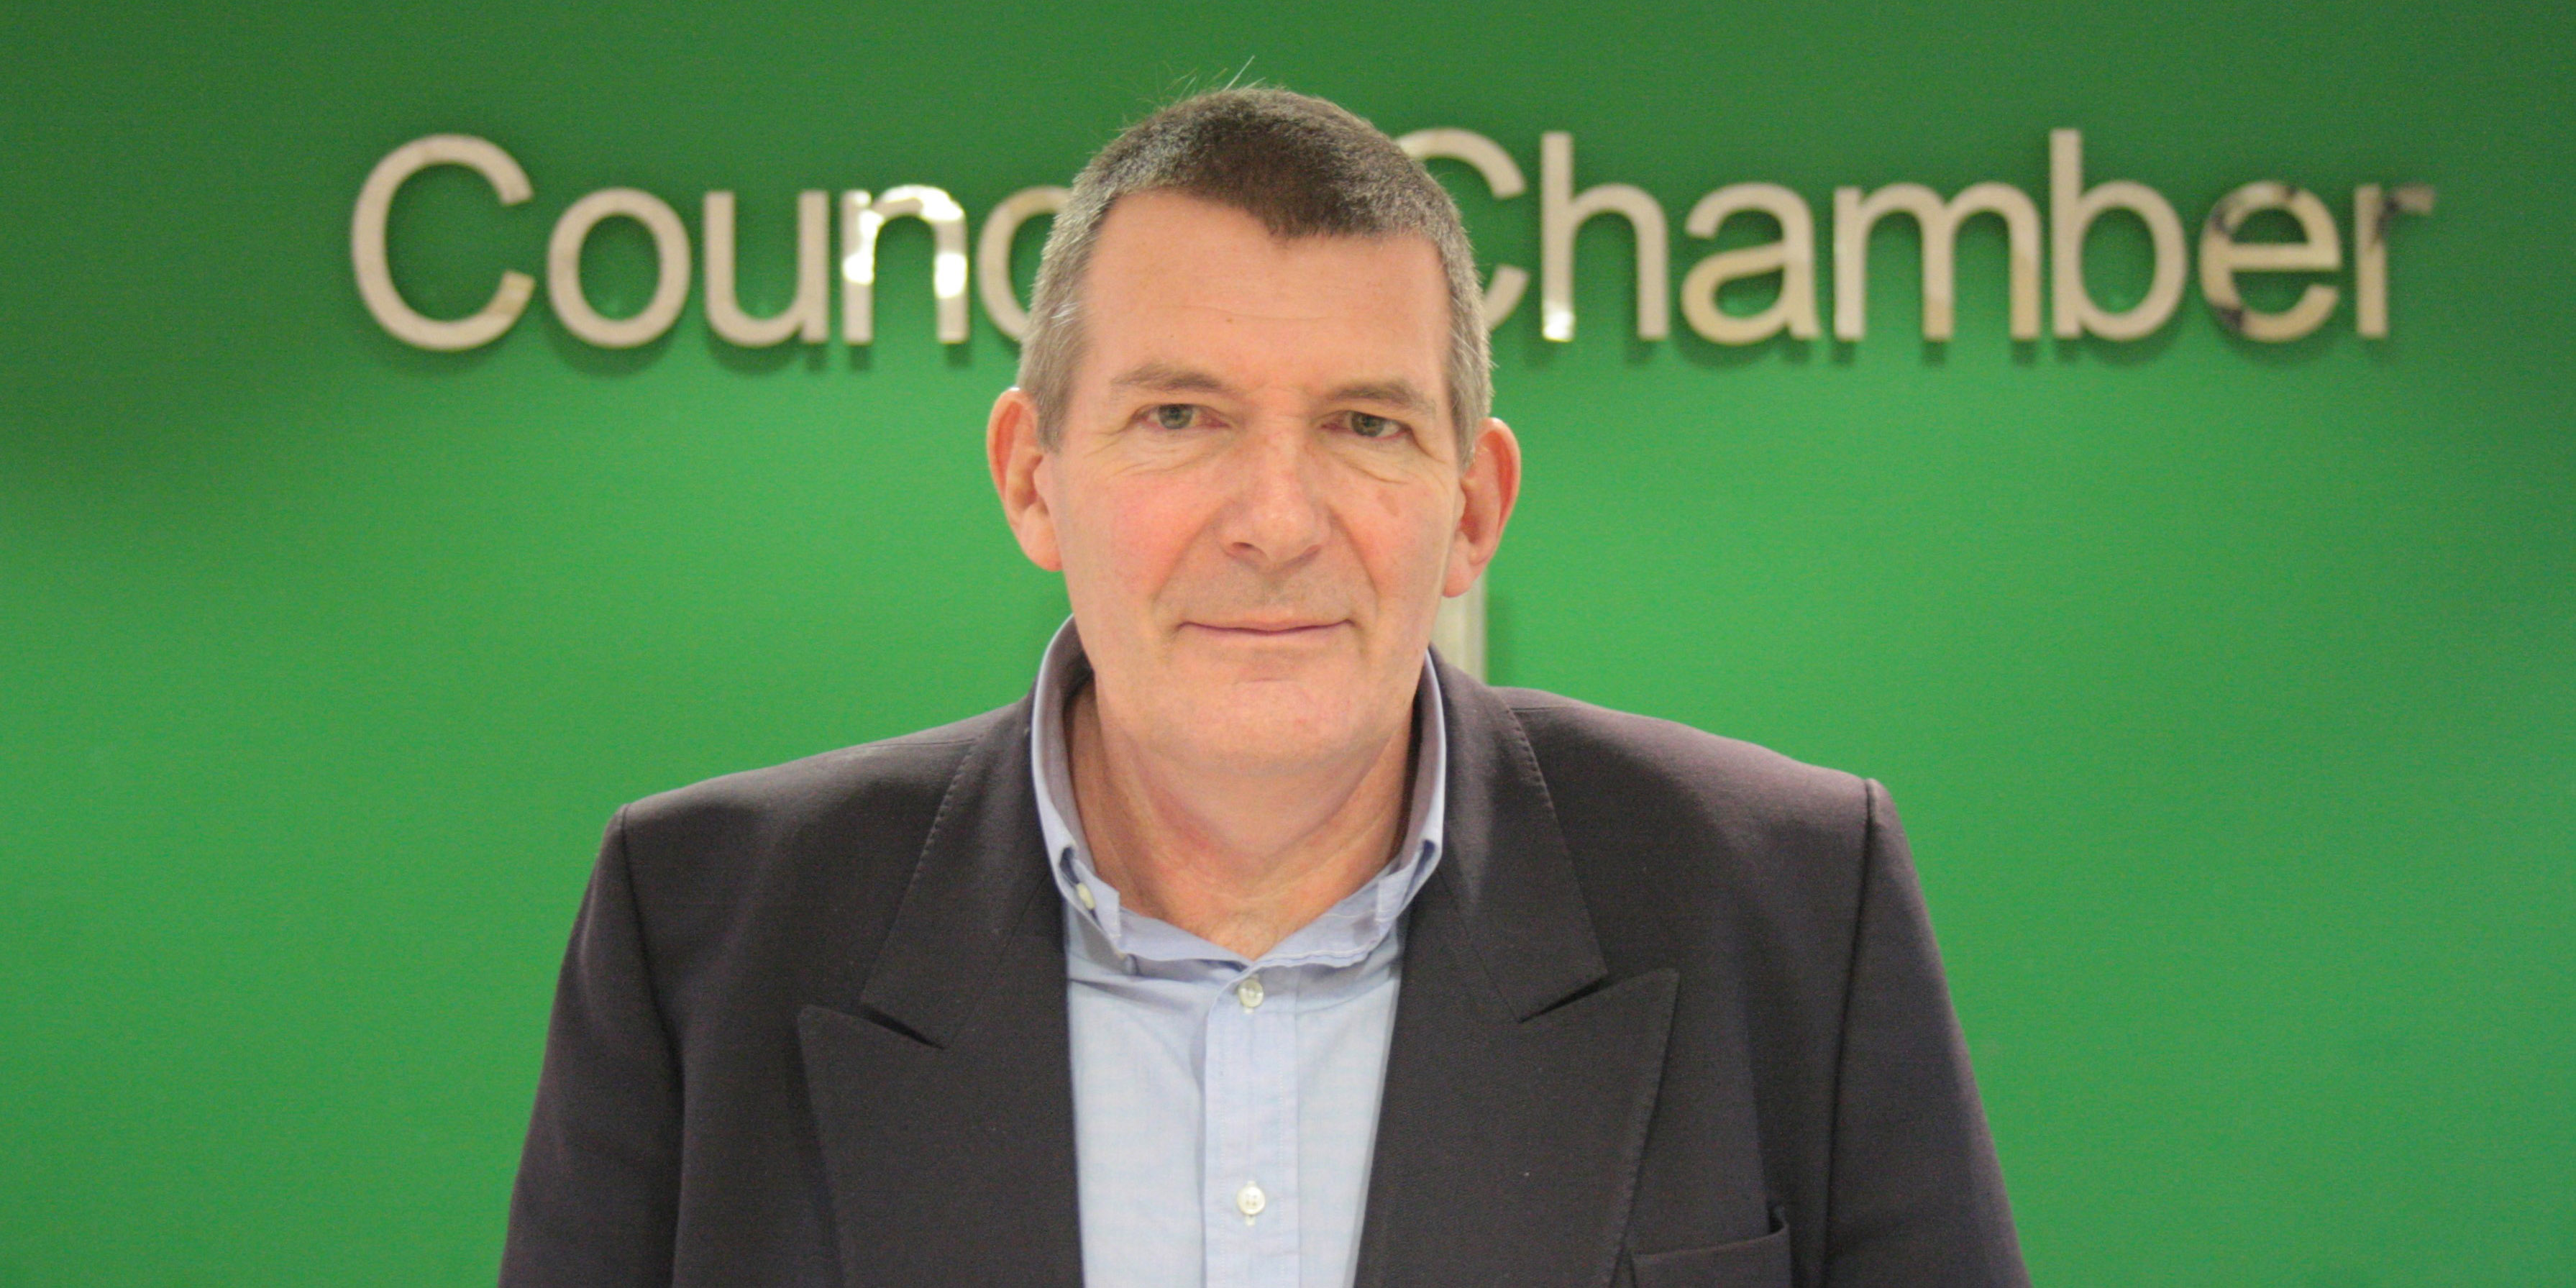 Council Leader Oliver Hemsley